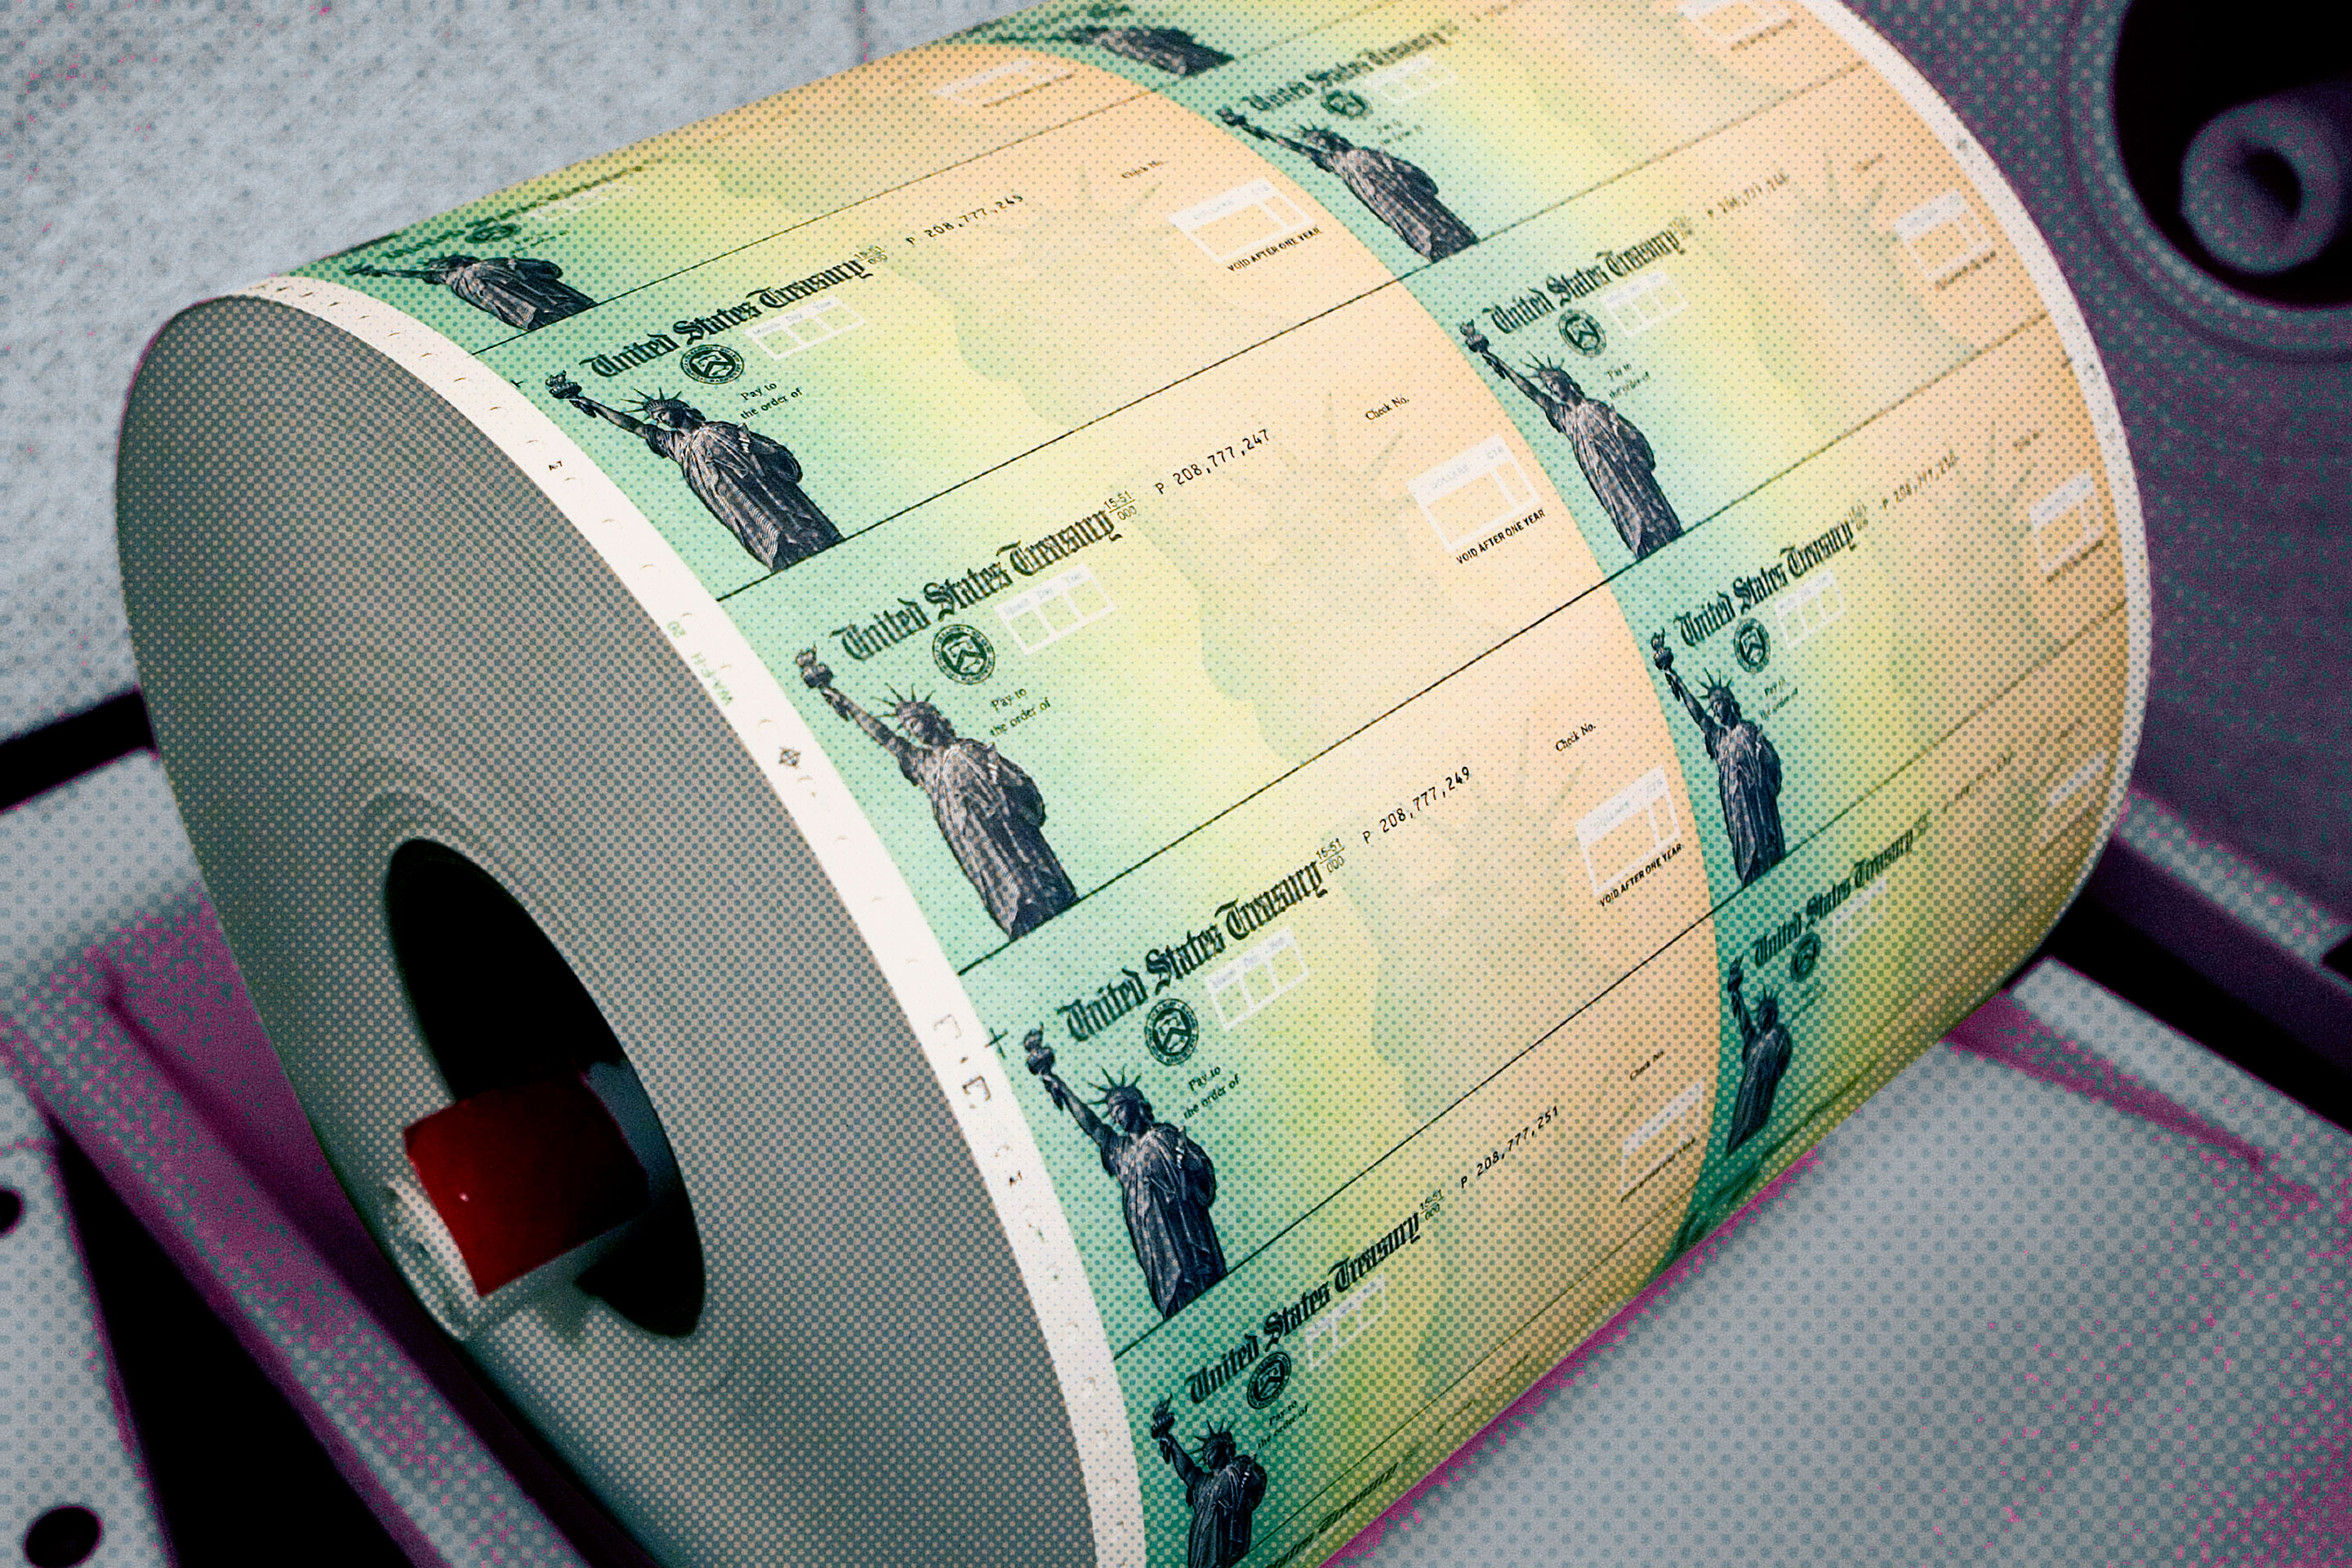 Second Stimulus Check Update on Eligibility, IRS Payments | Money